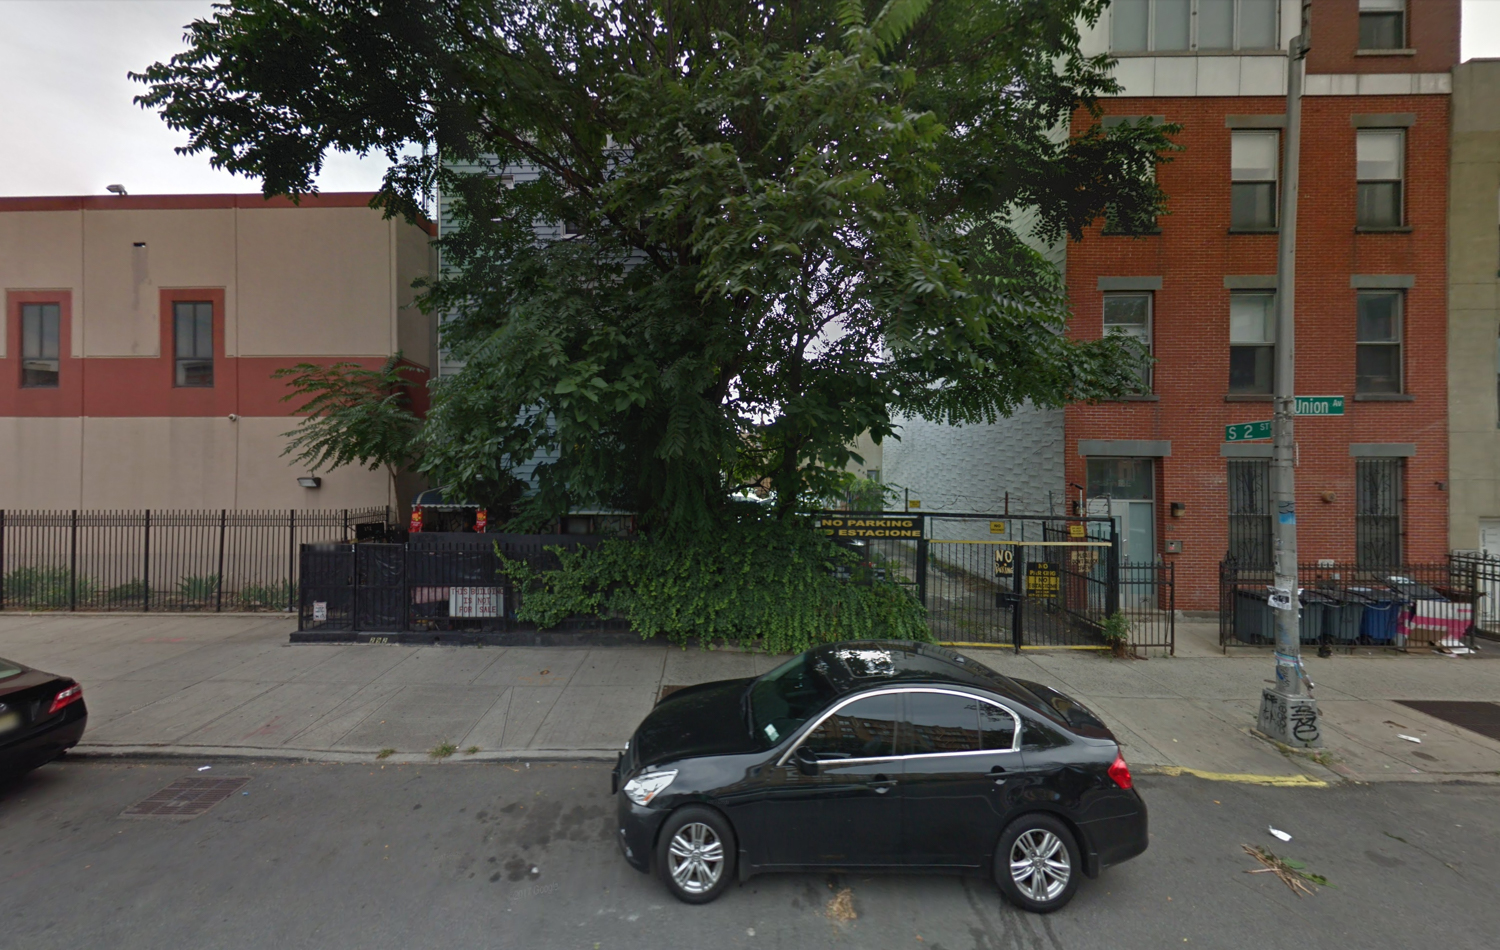 288 Union Avenue, via Google Maps